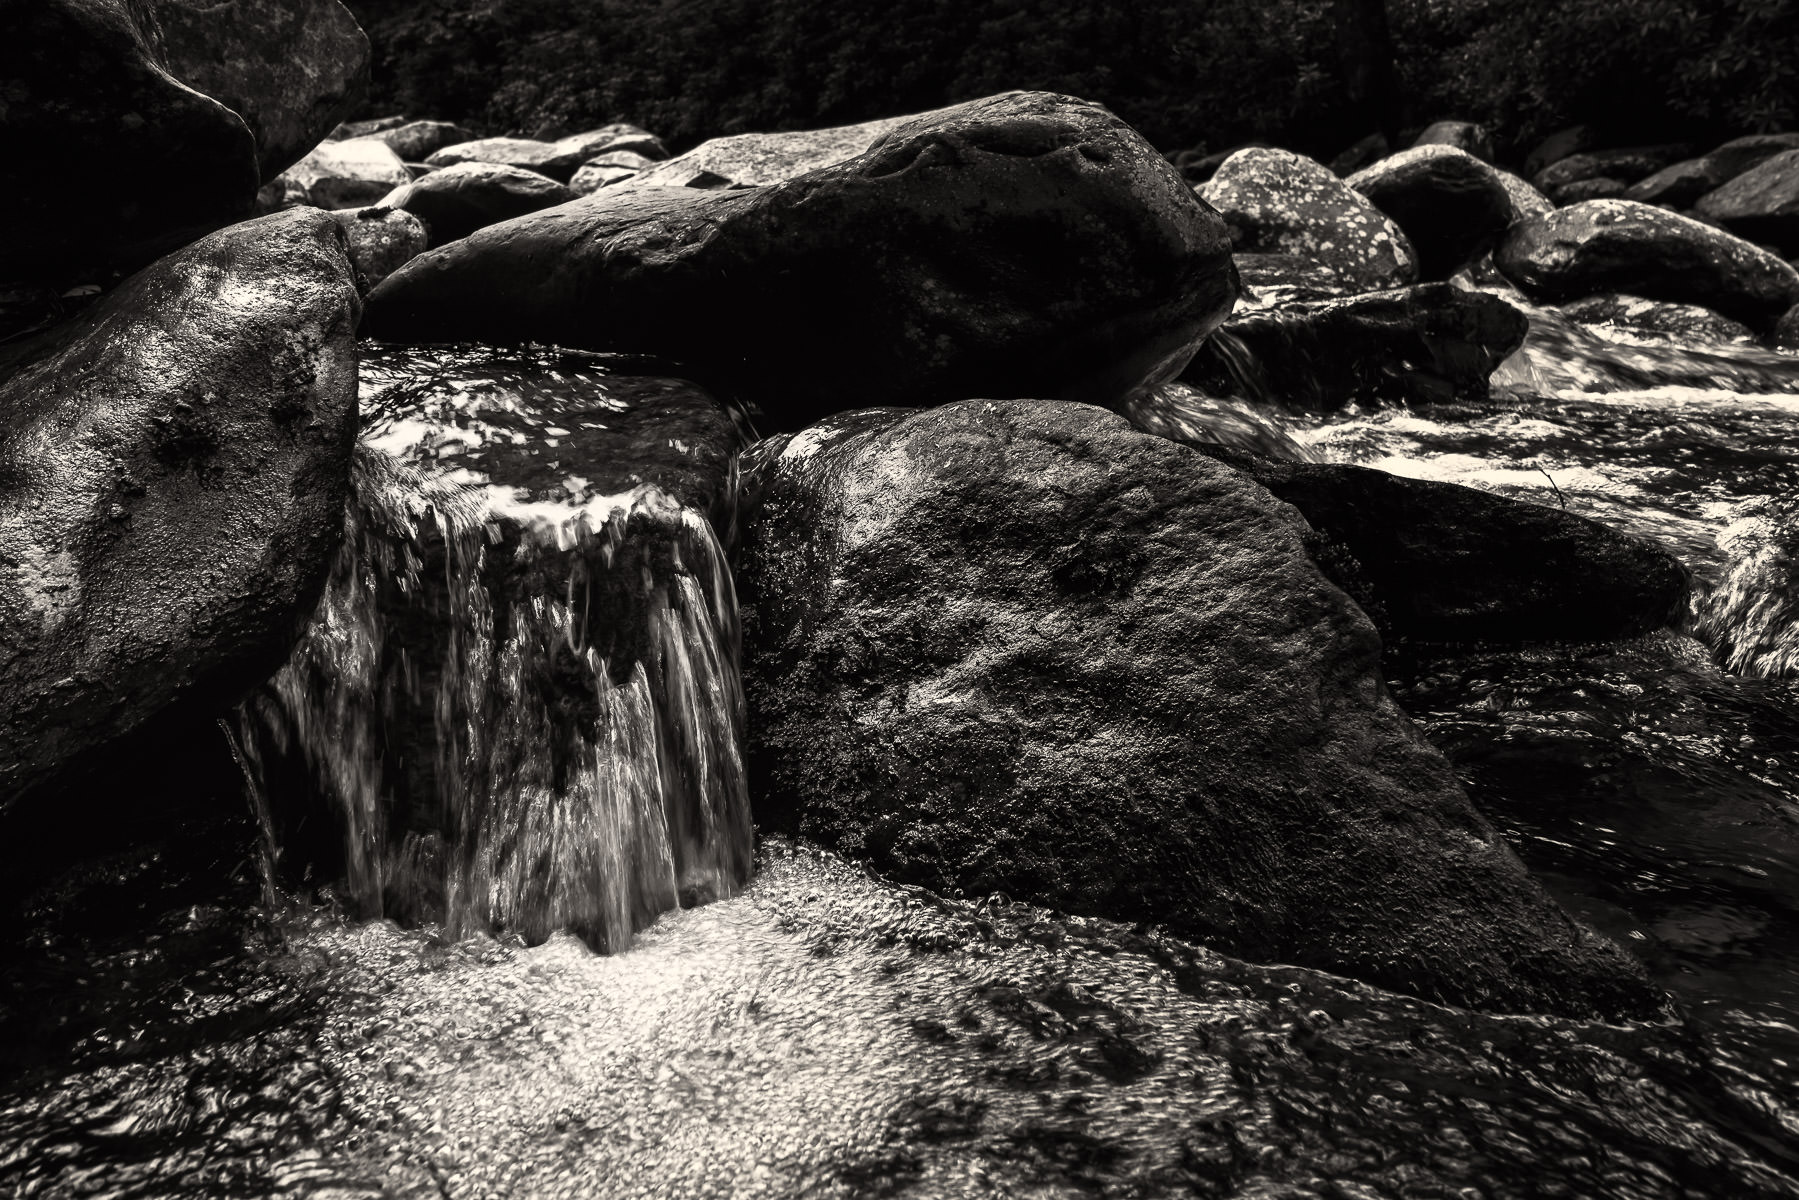 A stream's waters rush over rocks in the Great Smoky Mountains National Park, Tennessee.